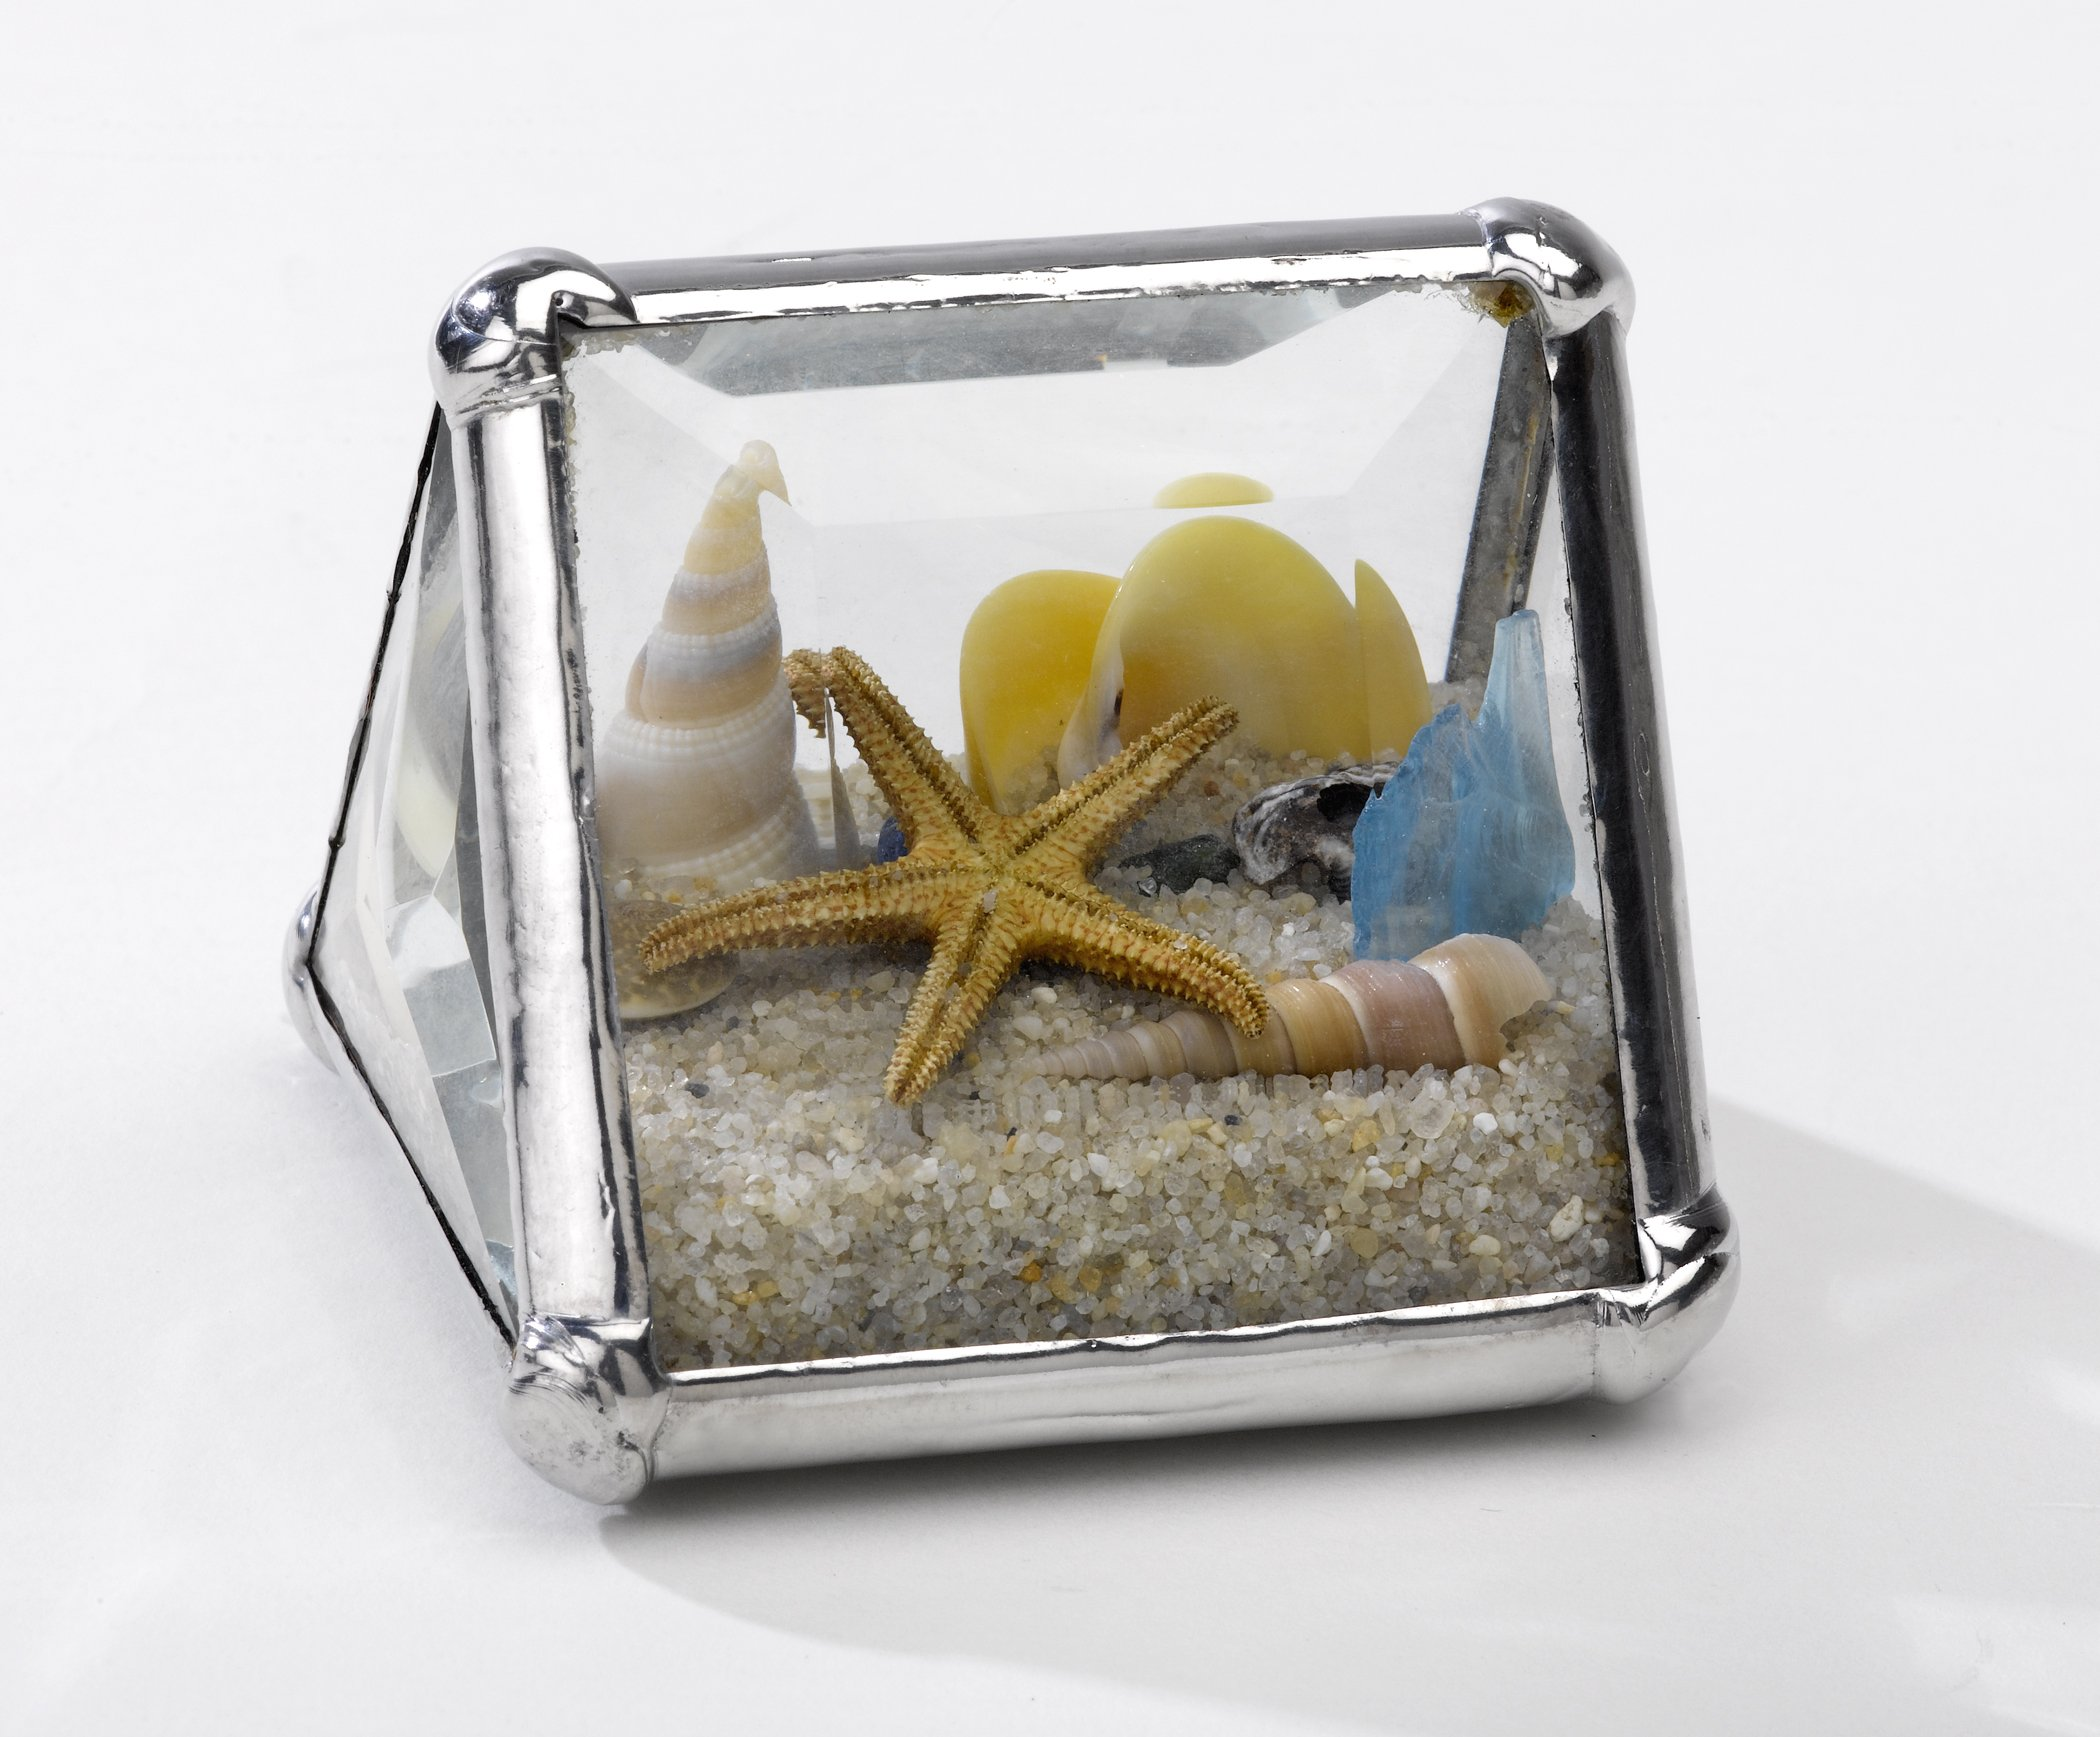 Christina Home Designs Beach Gifts - Mini 2'' Beach Kaleidoscope Tent - Small Collectable Ocean Sand Theme, Coastal Decor for Bathroom, Accessories, Paperweight - Compact Vacation Gift Ideas for Women